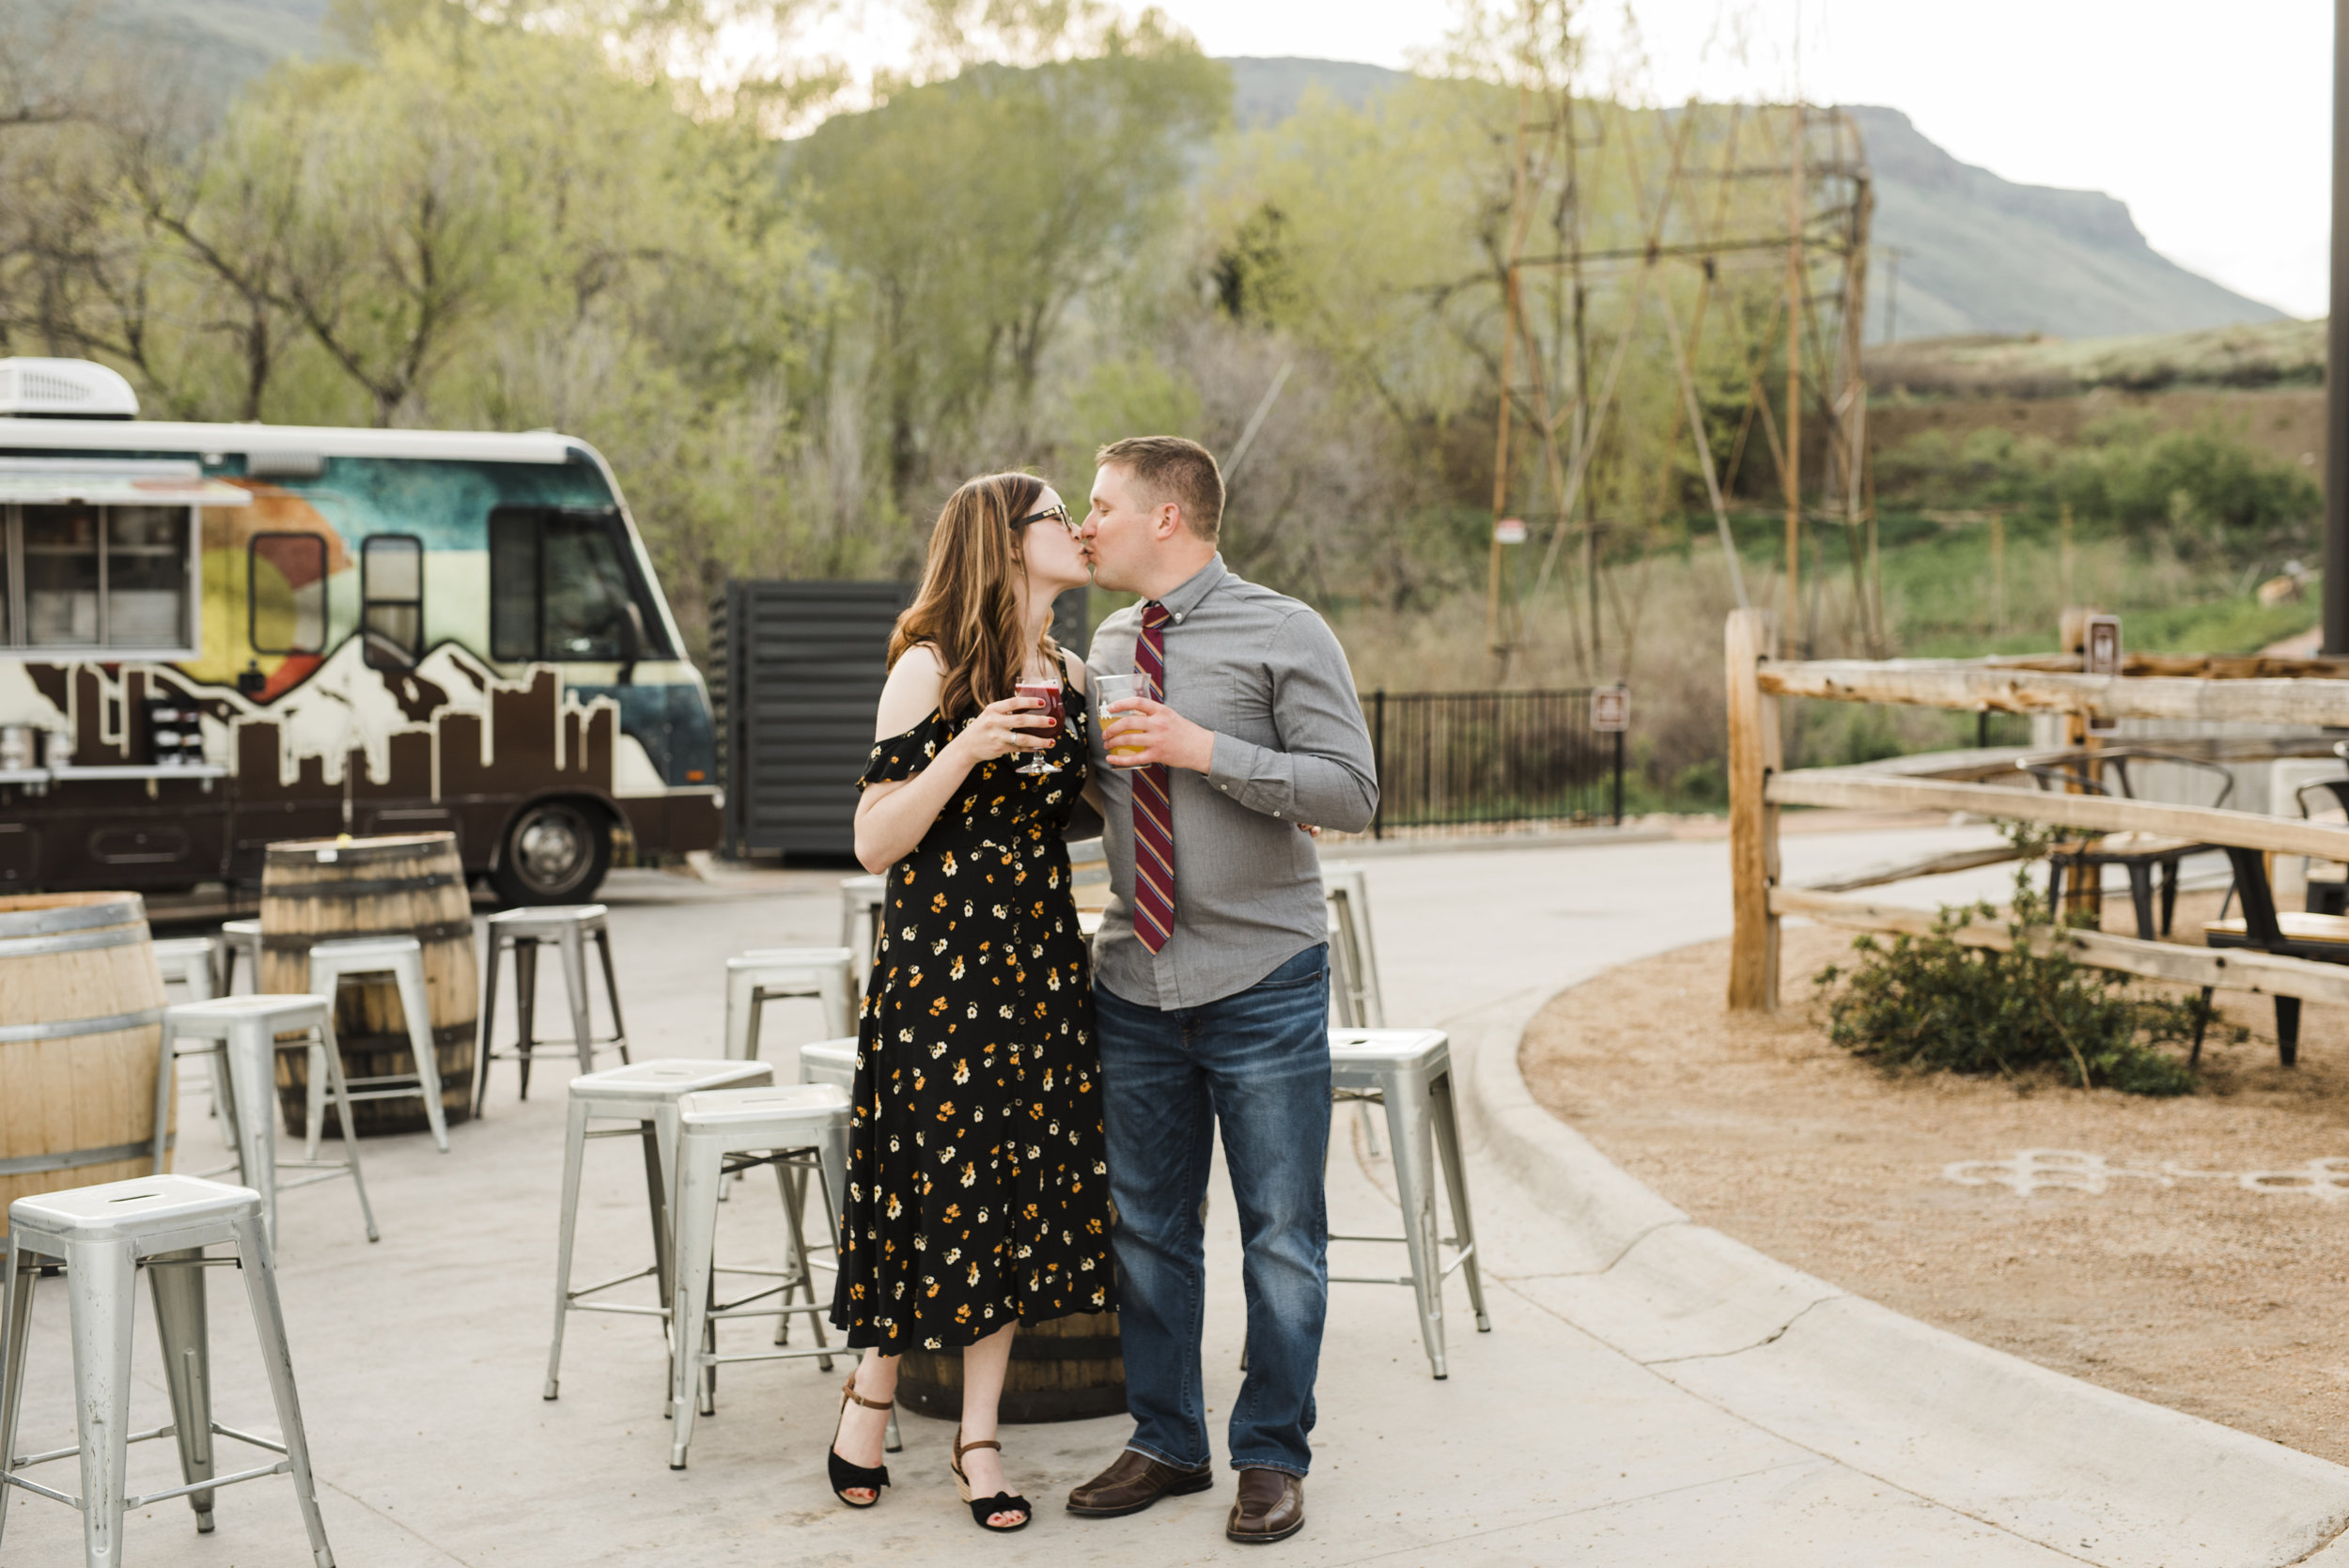 Colorado_Outdoor_Engagement_Photography_New_Terrain_Brewing_Rehearsal_Dinner_Apollo_Fields_08.jpg